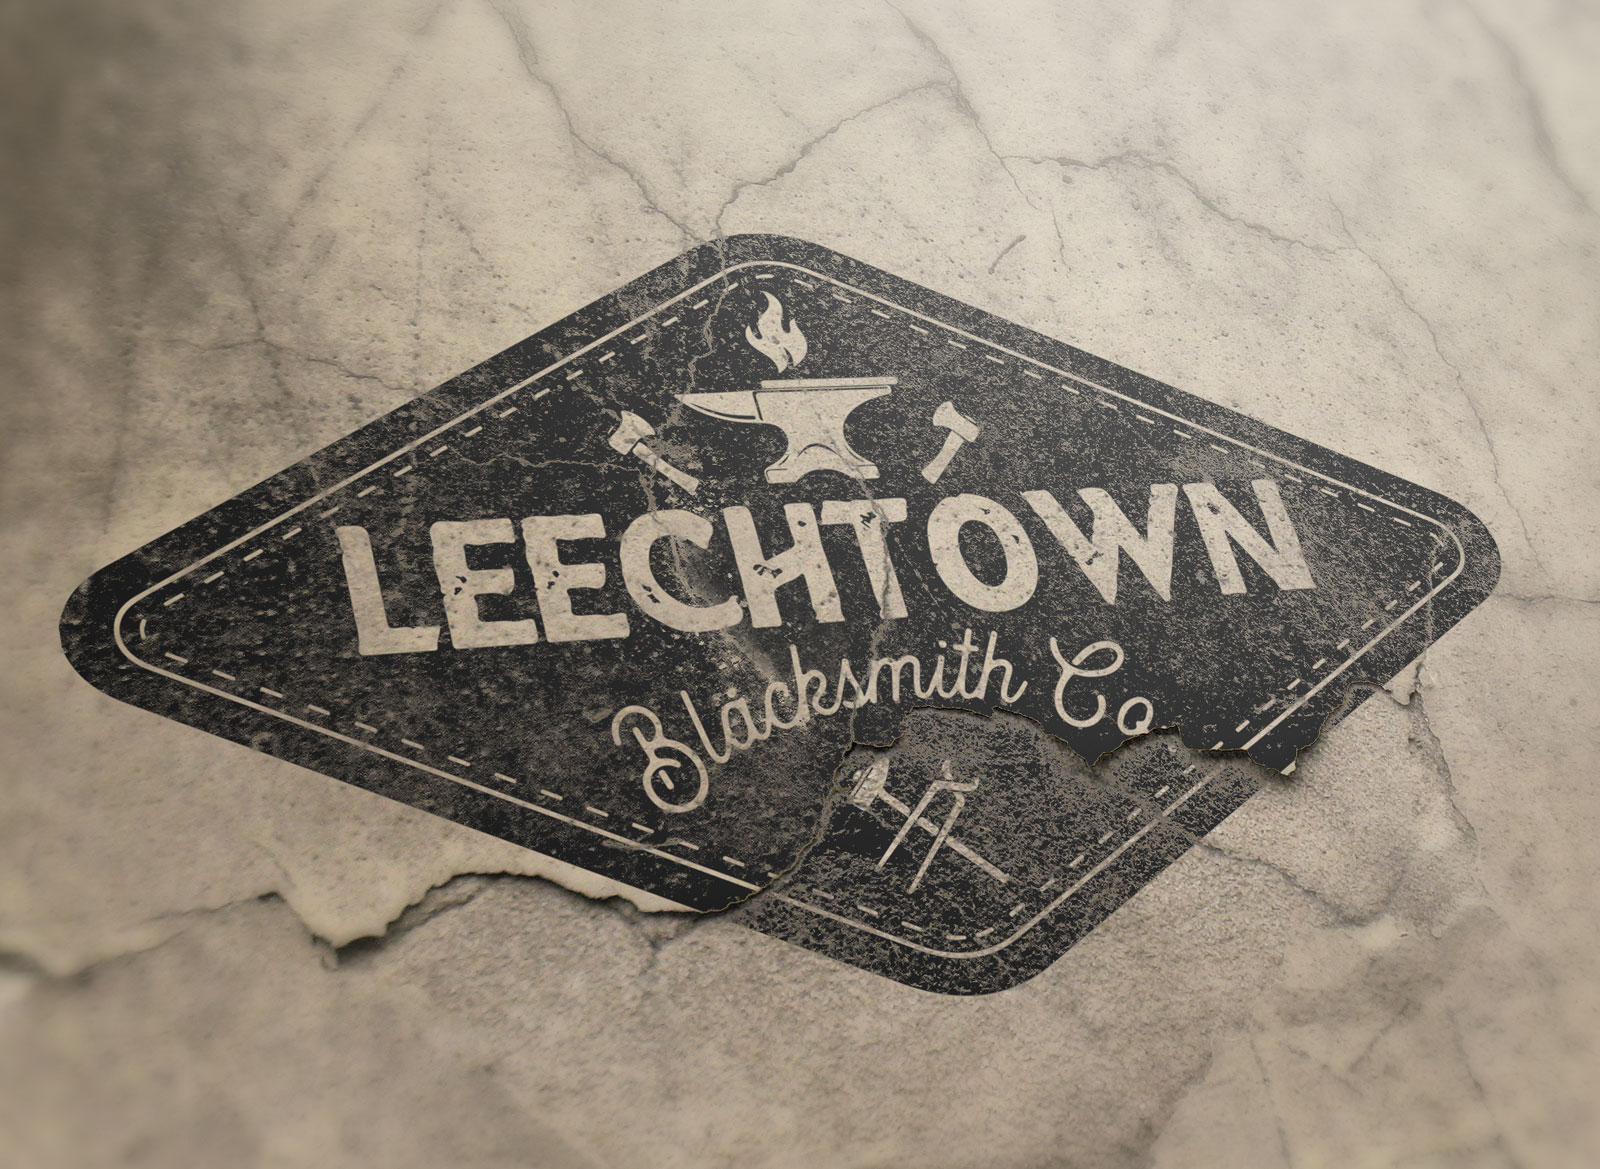 Leechtown Blacksmith Co.